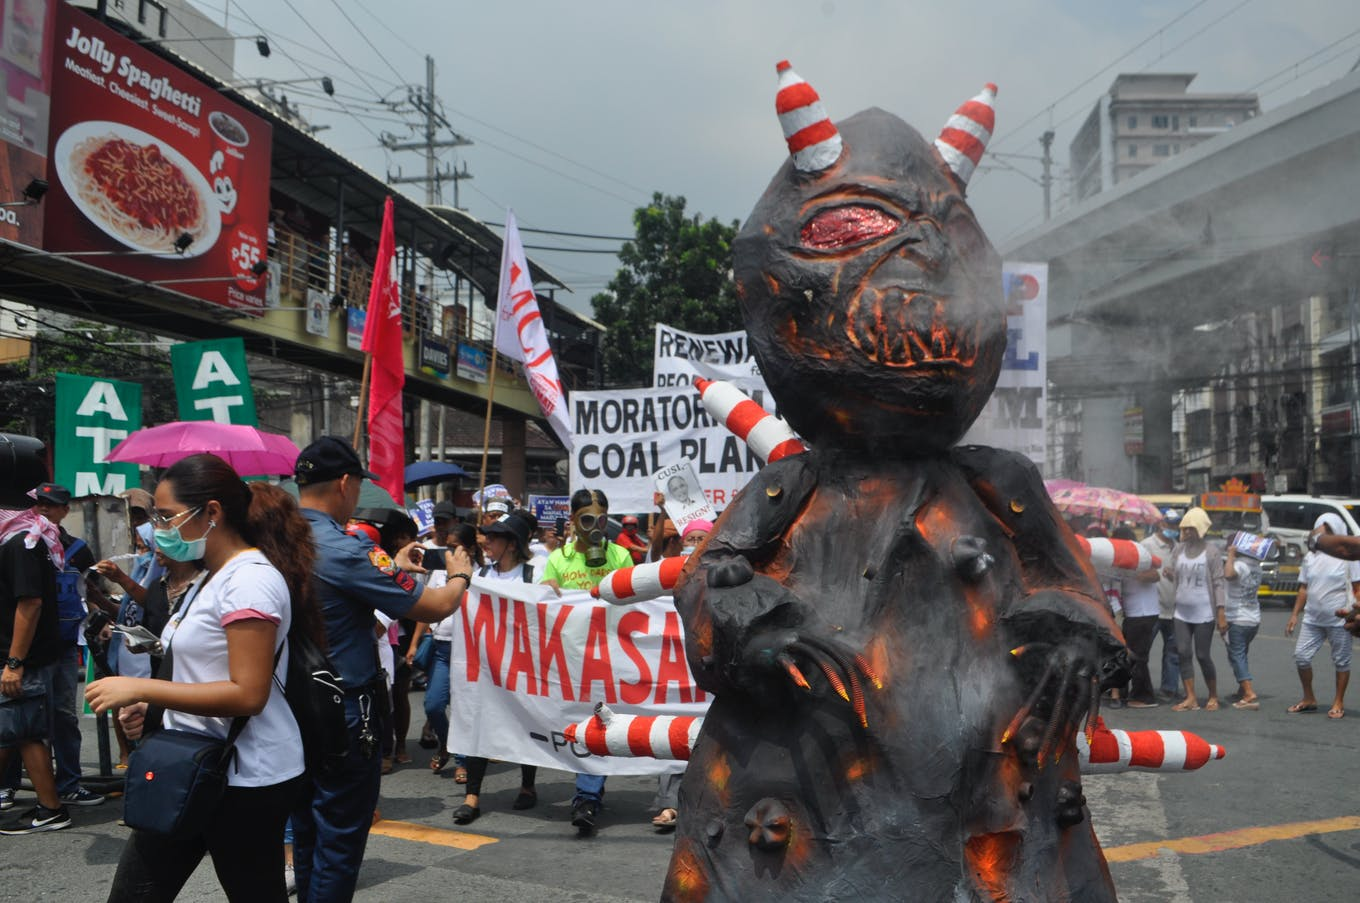 Coal is still king in the Philippines. A demonstrator dressed in a coal costume on a march outside the presidential palace